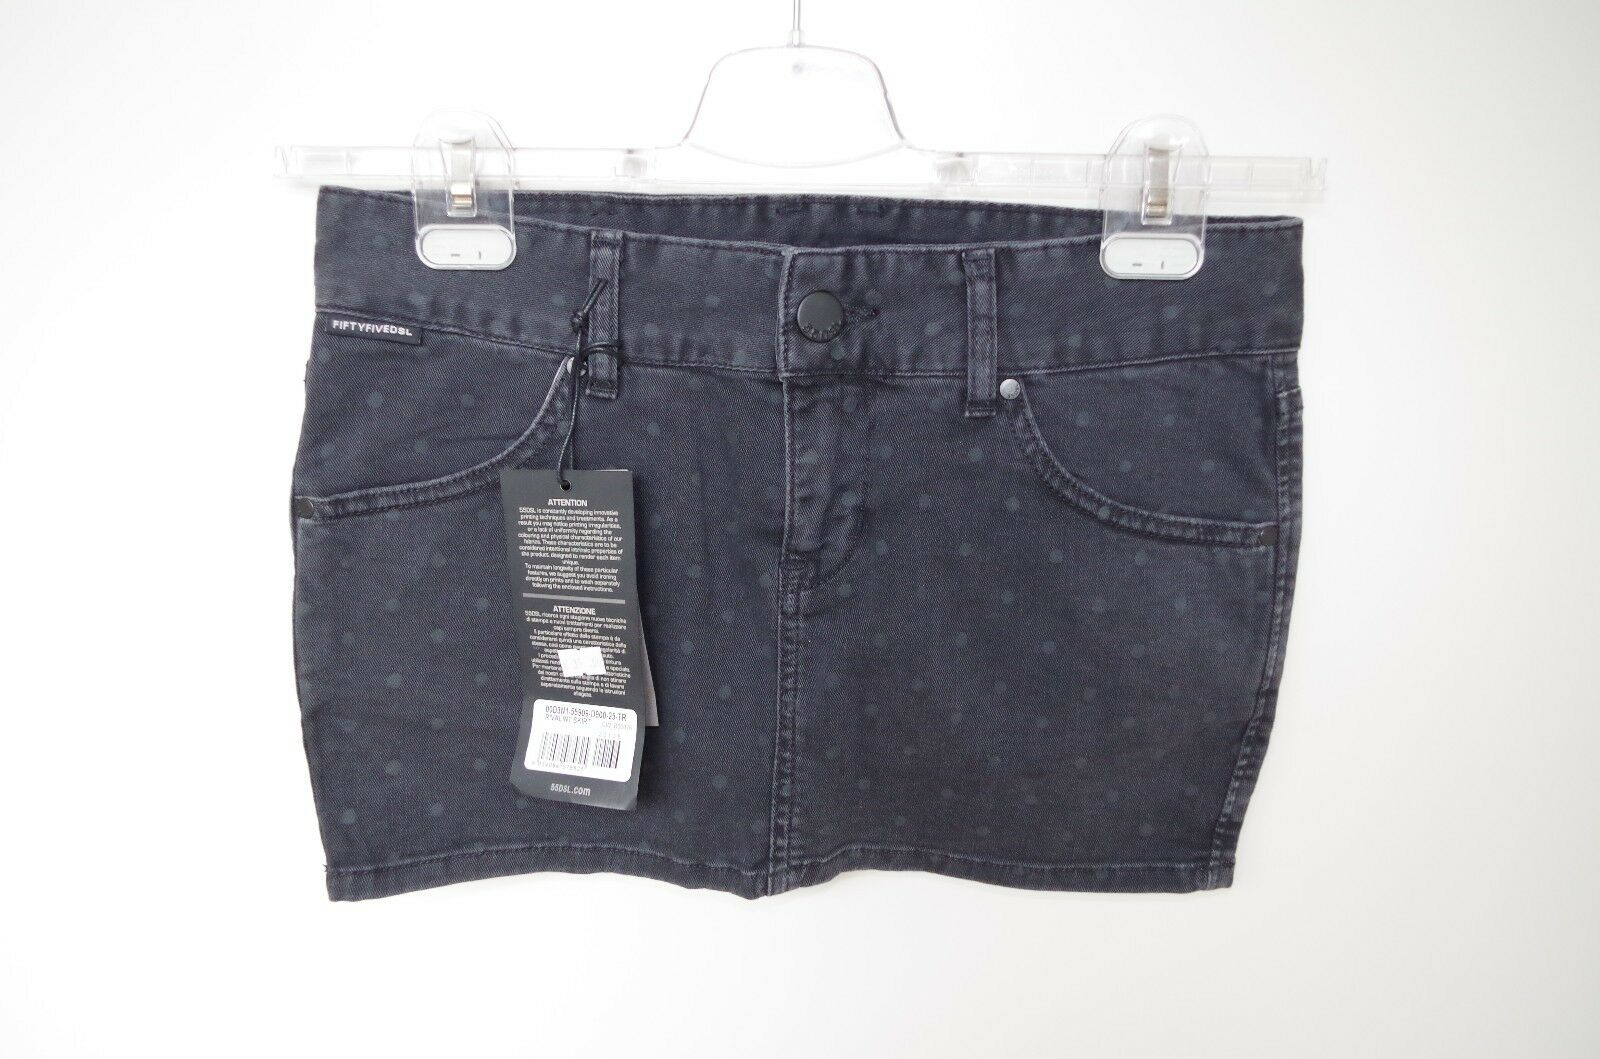 DIESEL sz 26 WOMENS SKIRT MINI POLKA DOT DENIM JEANS SOLID BEACH ROUTES PENCIL